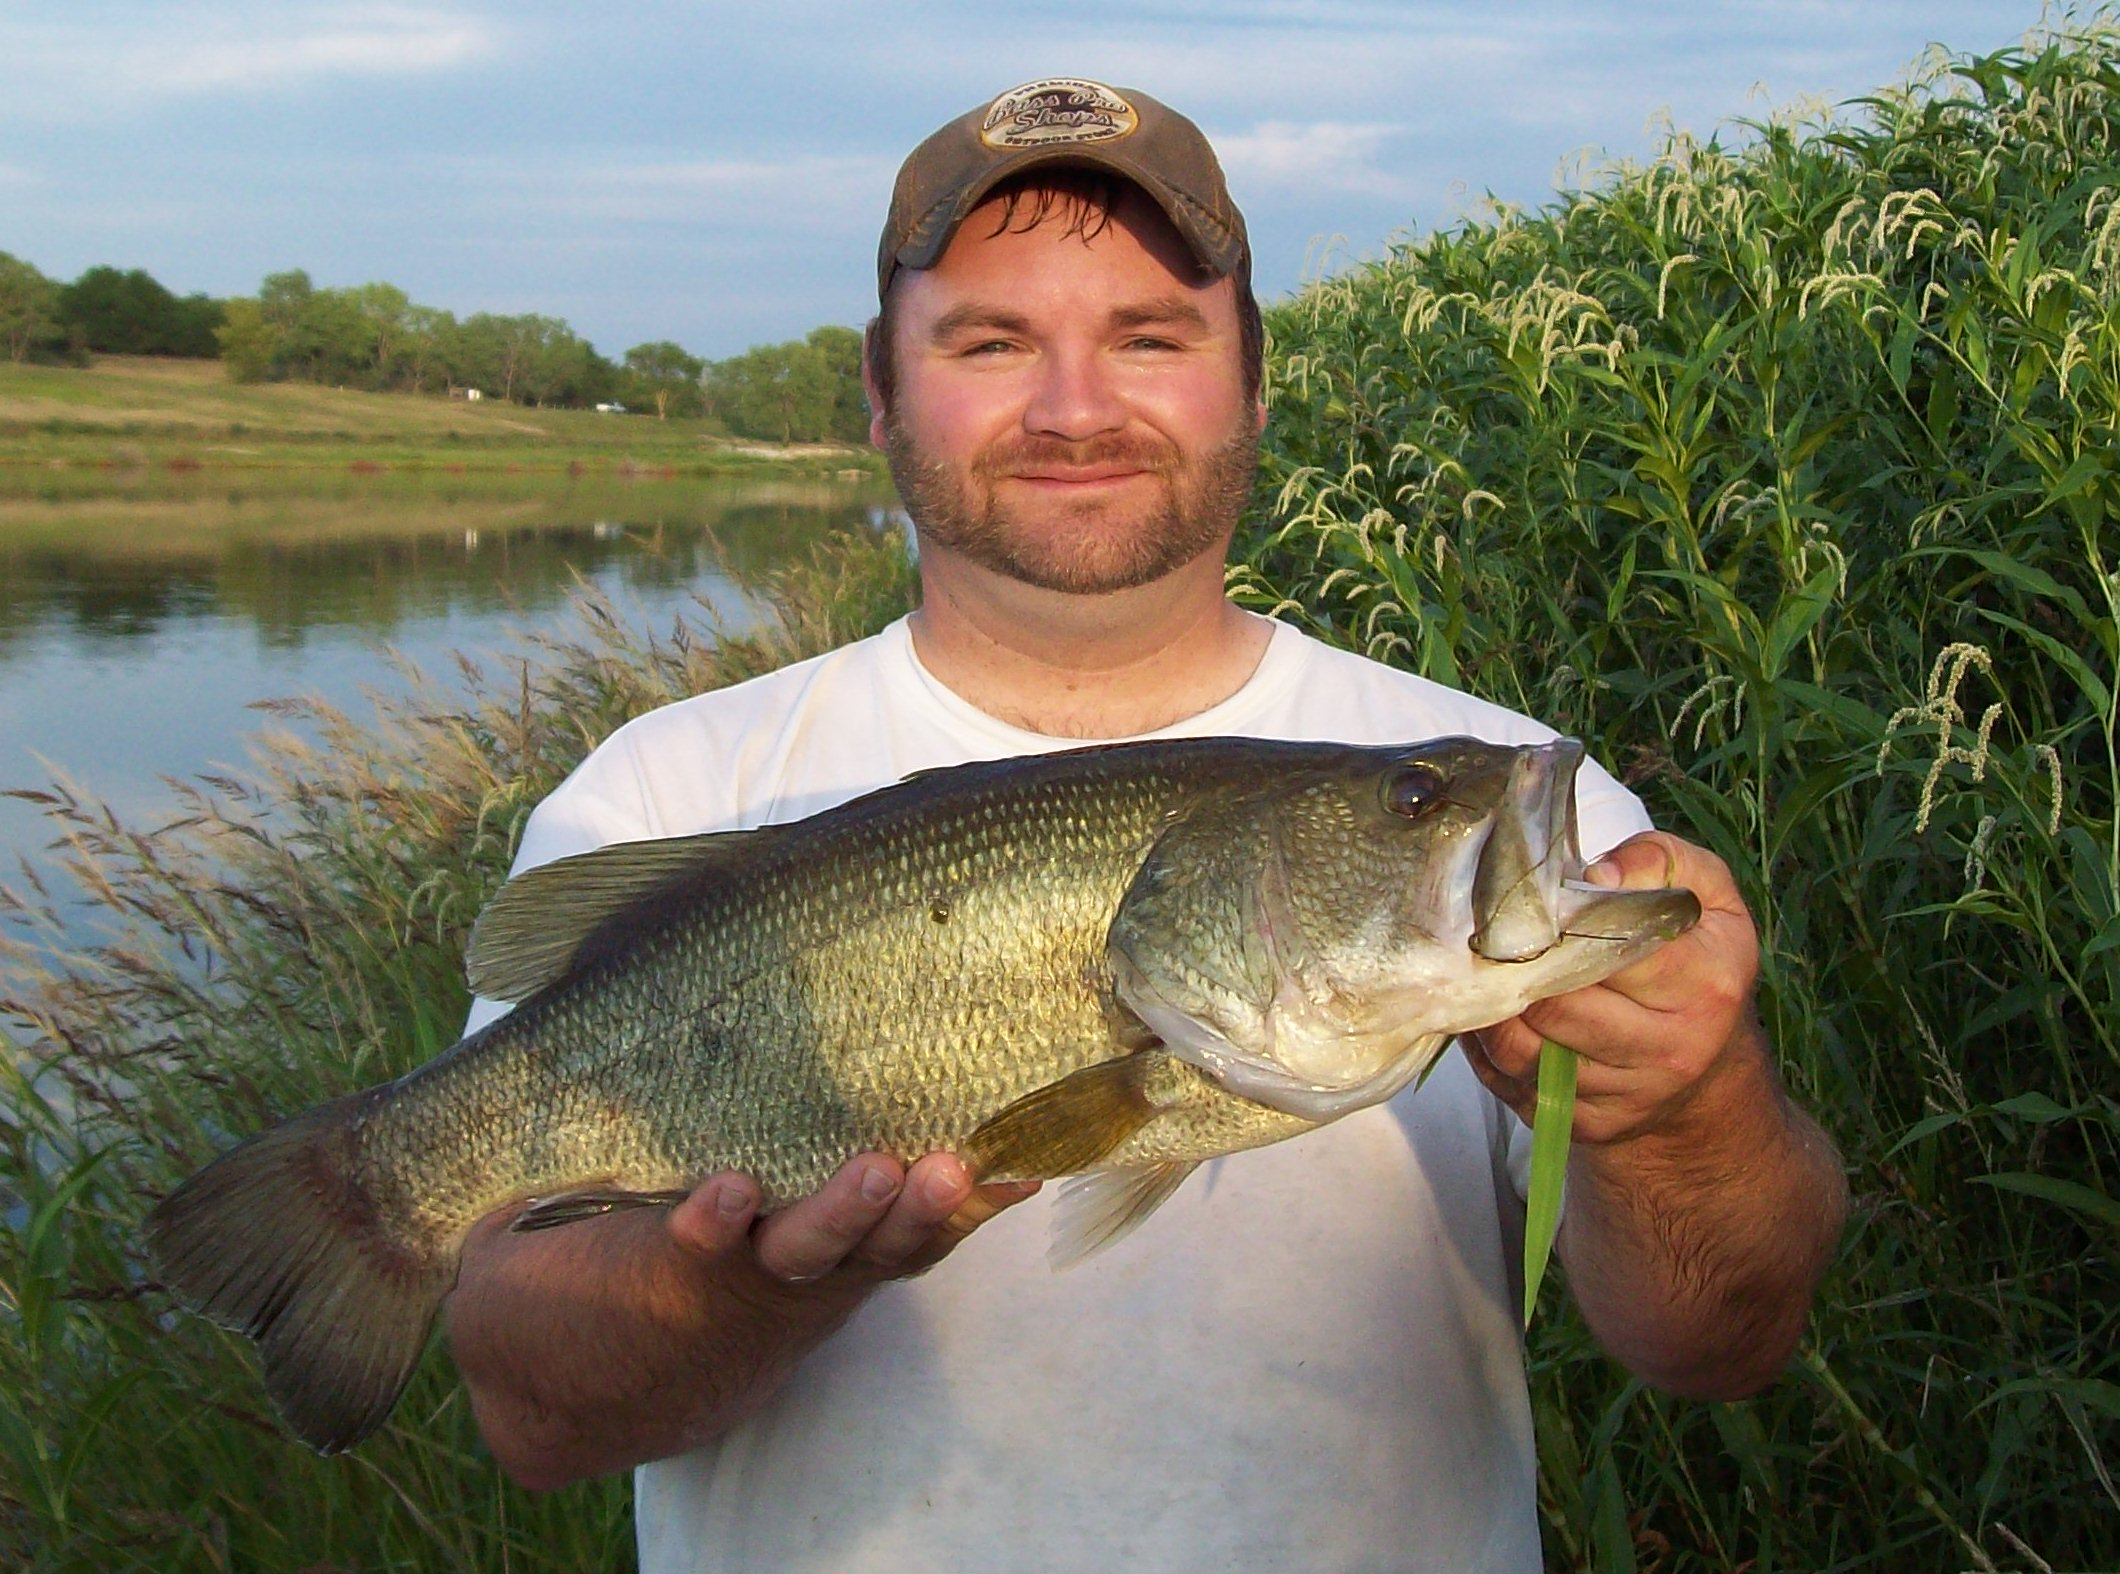 Dusty Schelbitzki Hallam Nebraska  Buddy and i went out for a bit of fishing one evening and had